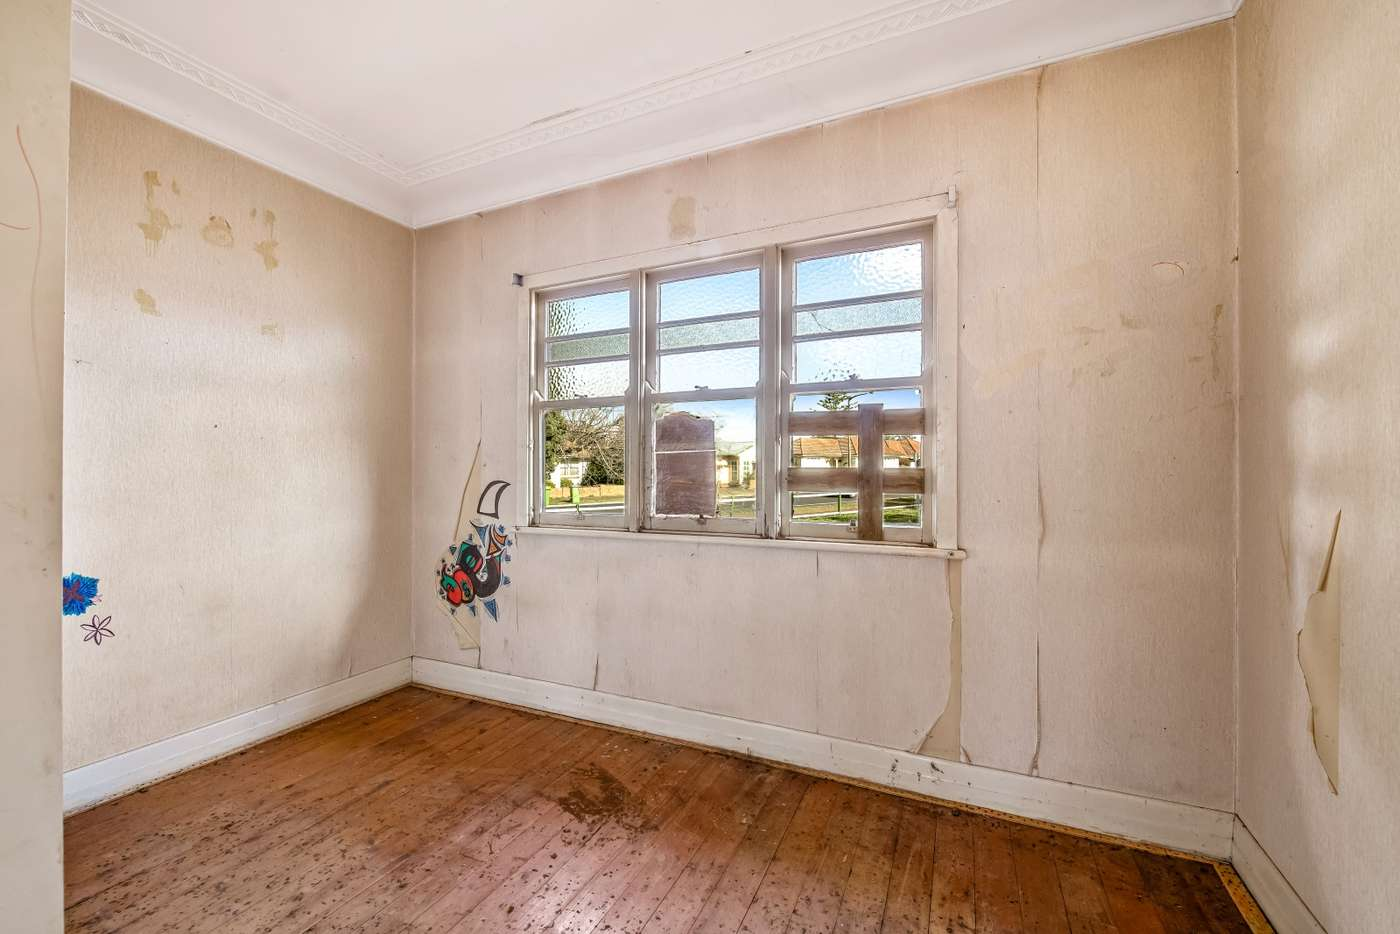 Fifth view of Homely house listing, 47 Drayton Road, Harristown QLD 4350